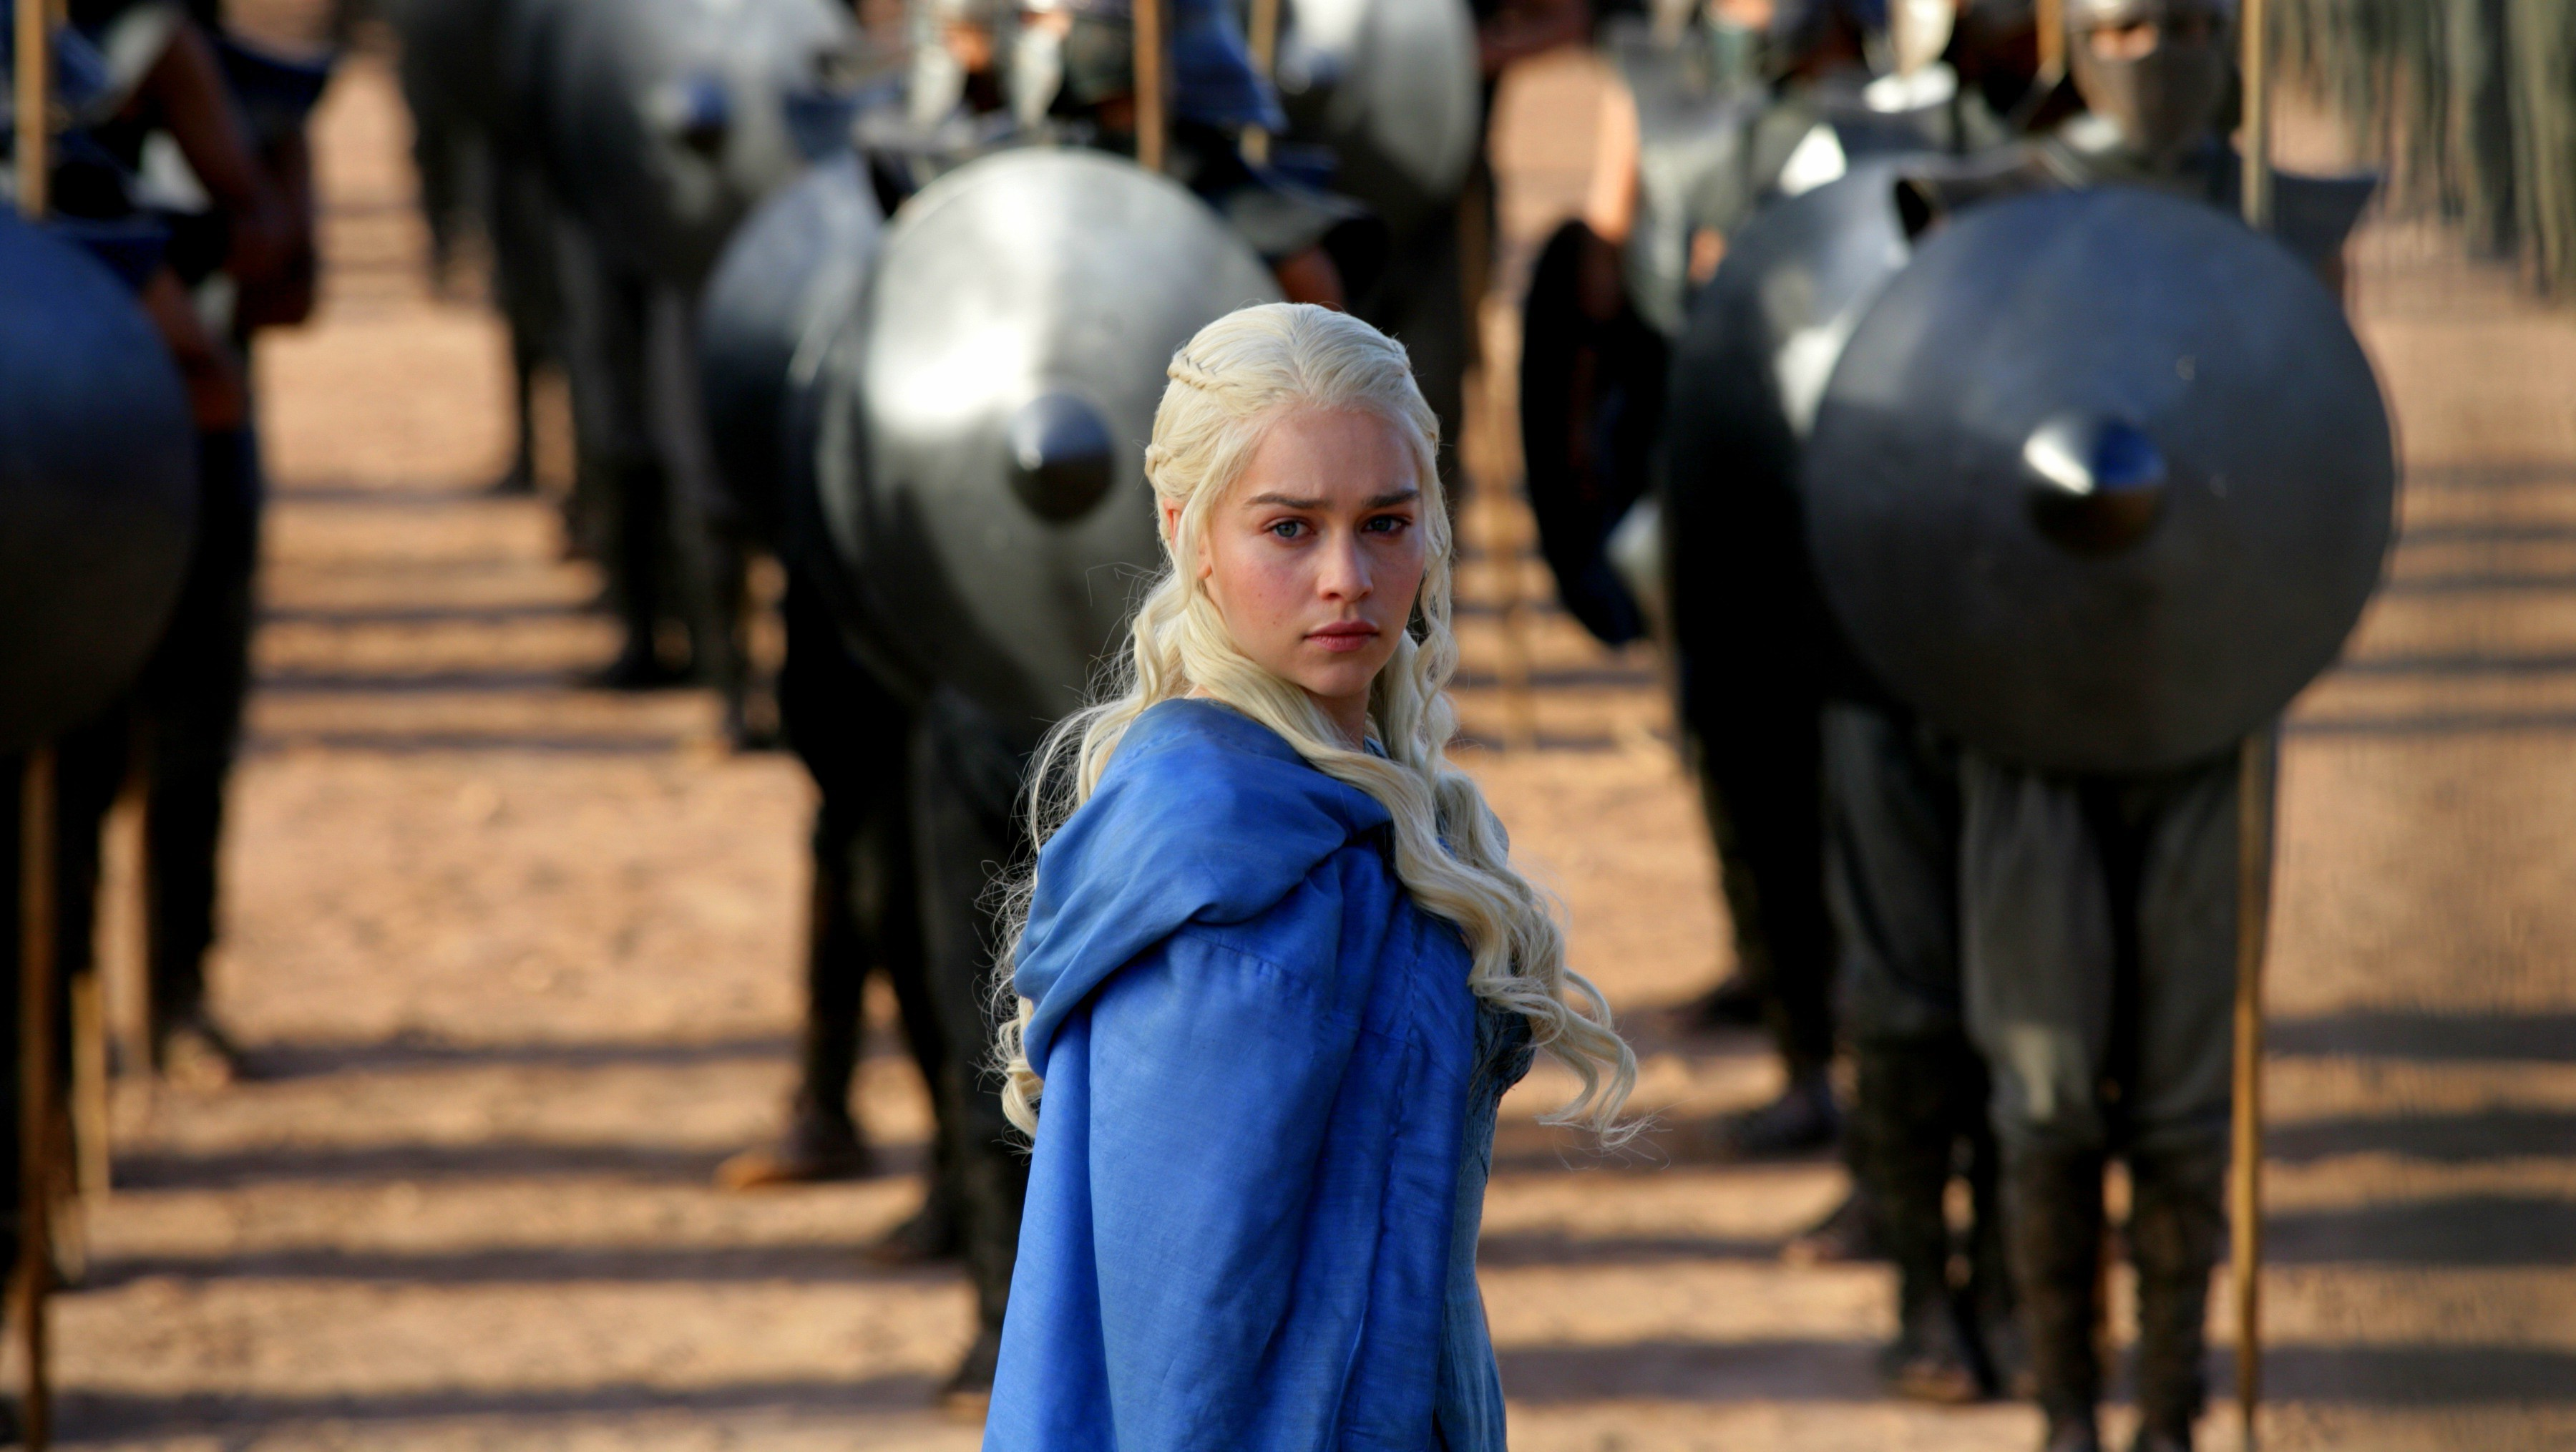 Daenerys Targaryen, Game Of Thrones, Blue Clothes Wallpapers HD / Desktop  and Mobile Backgrounds